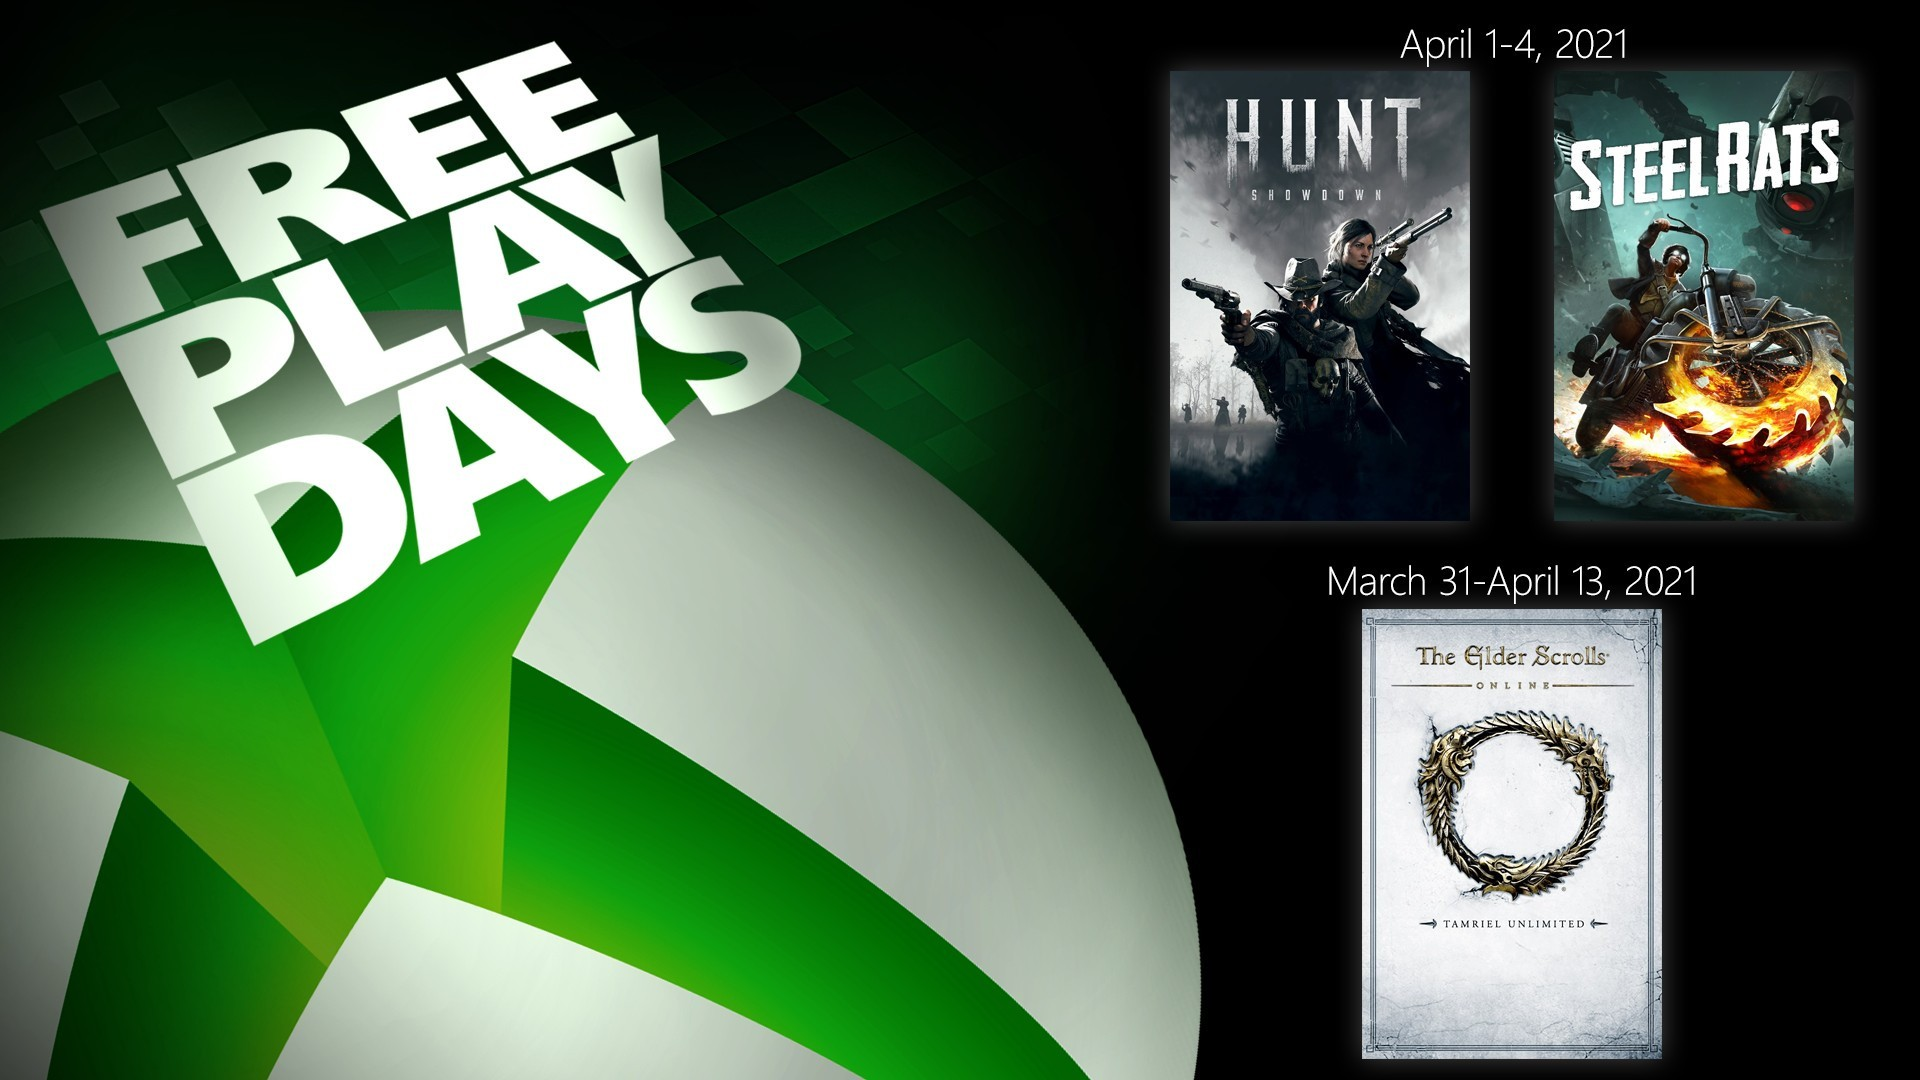 Free Play Days – The Elder Scrolls Online Tamriel Unlimited, Hunt: Showdown, and Steel Rats 1